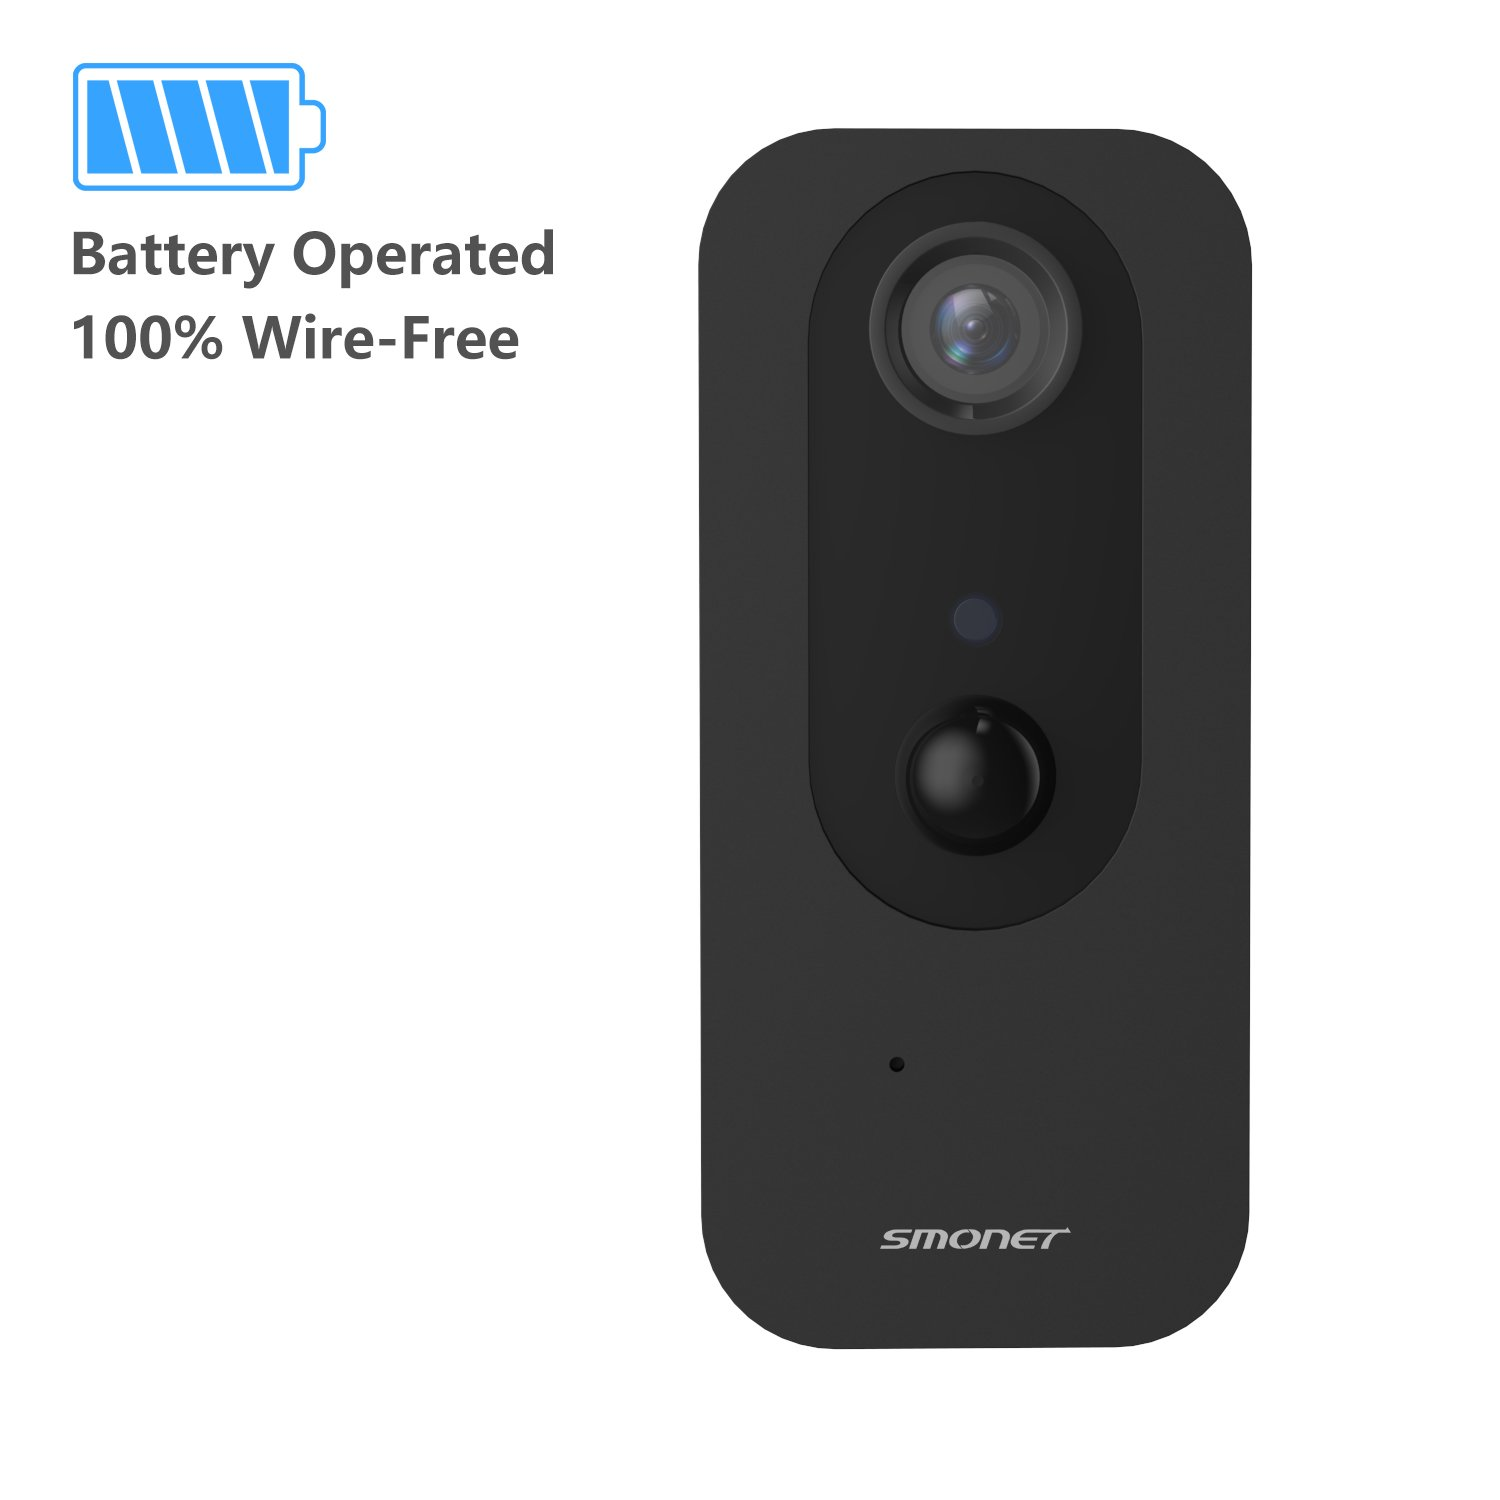 Security Camera Wireless, SMONET Battery Operated 100% Wire-Free IP Camera with PIR Alarm, IR Night Vision, TWO-WAY Audio, HD Indoor Surveillance Camera for Baby Pet Monitor